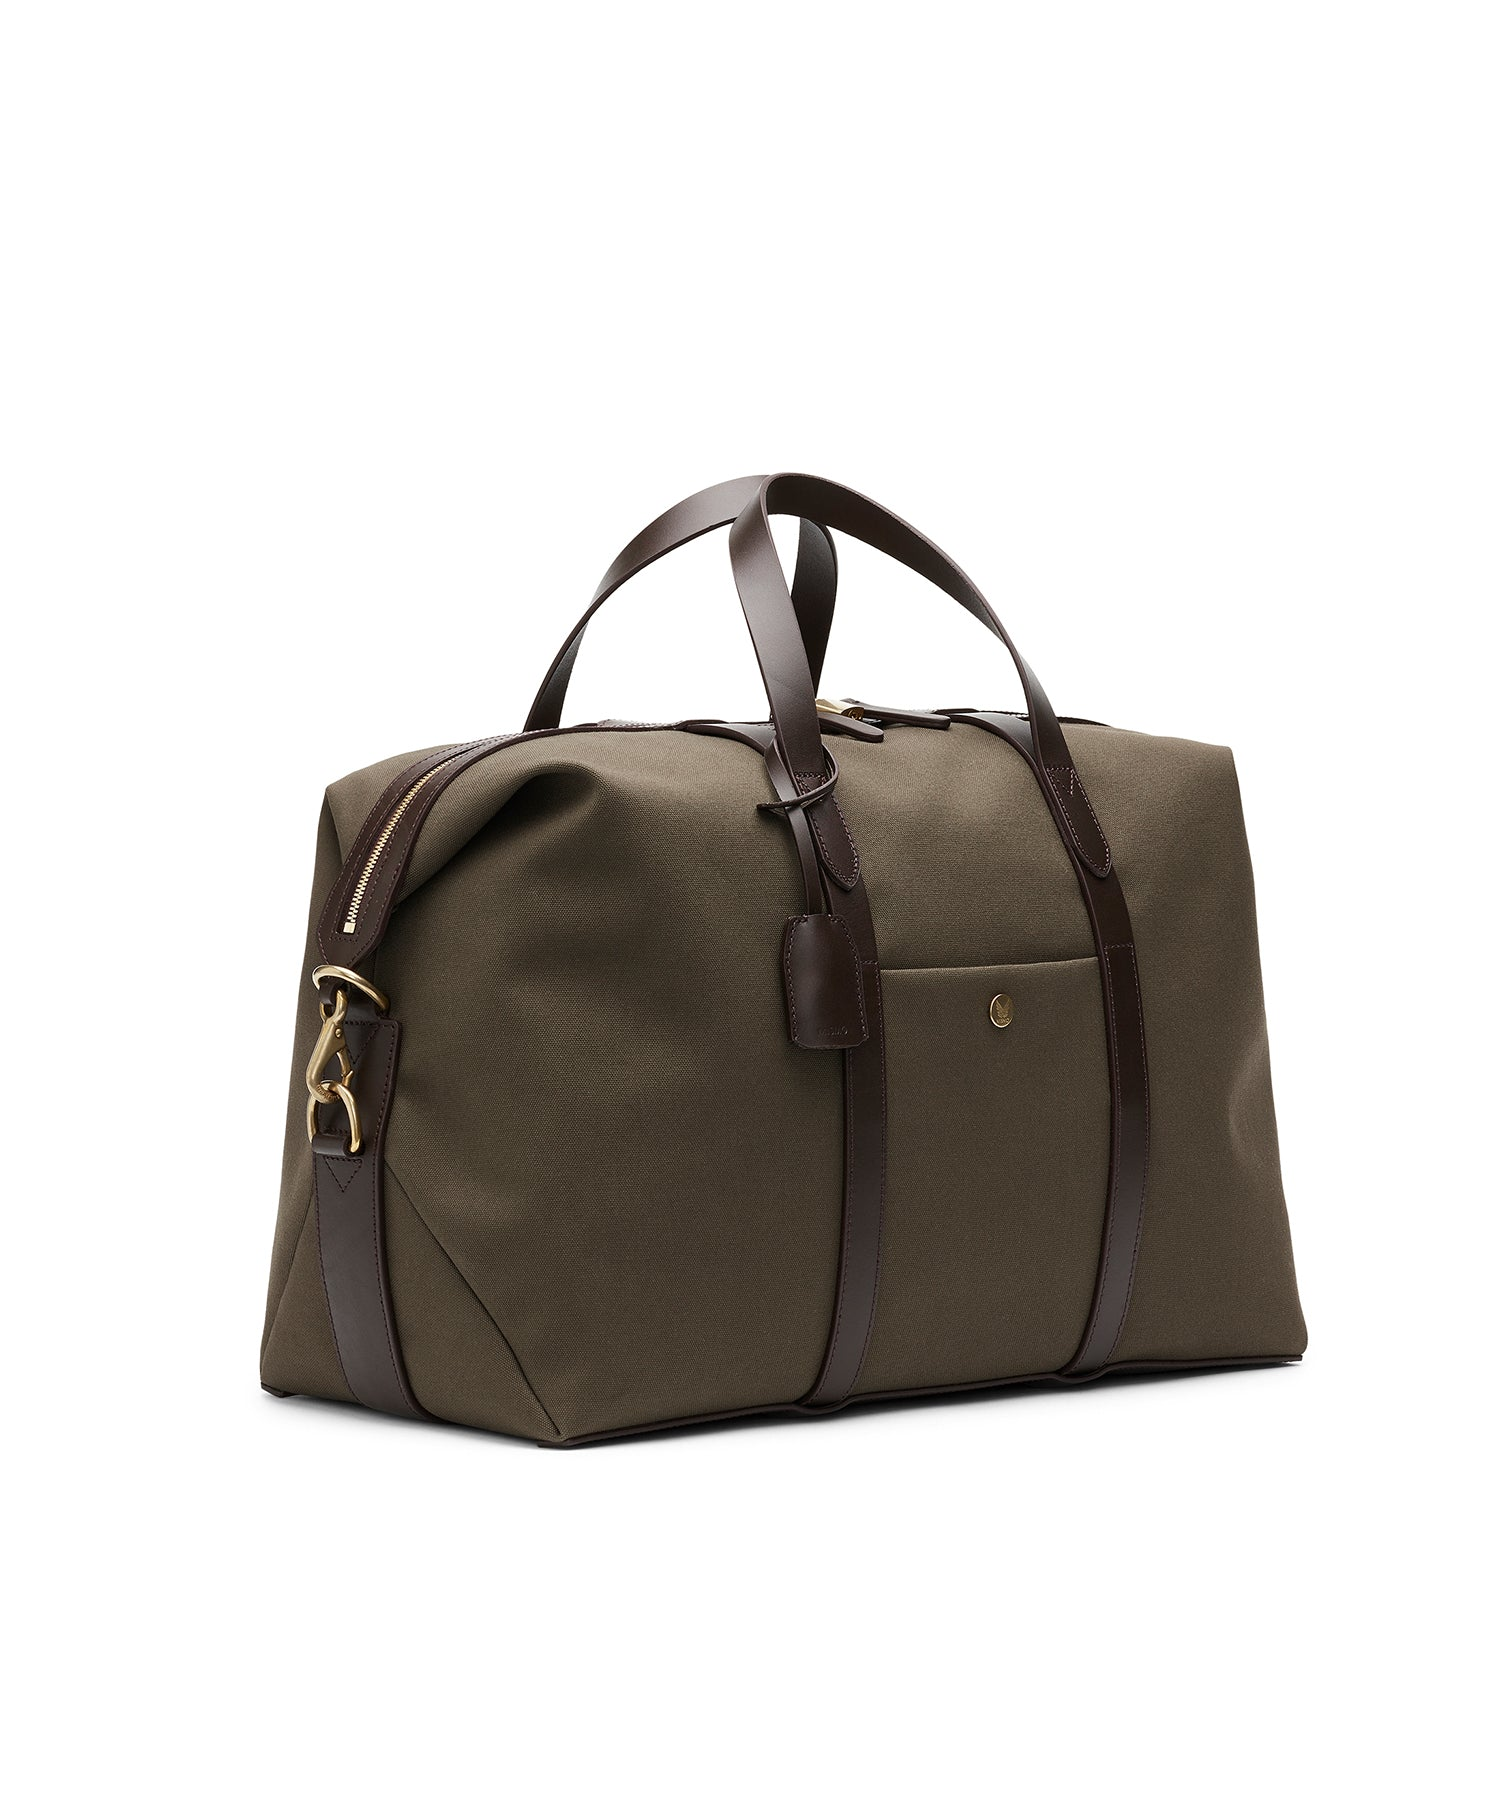 MISMO M/S Avail Weekender in Army - Todd Snyder